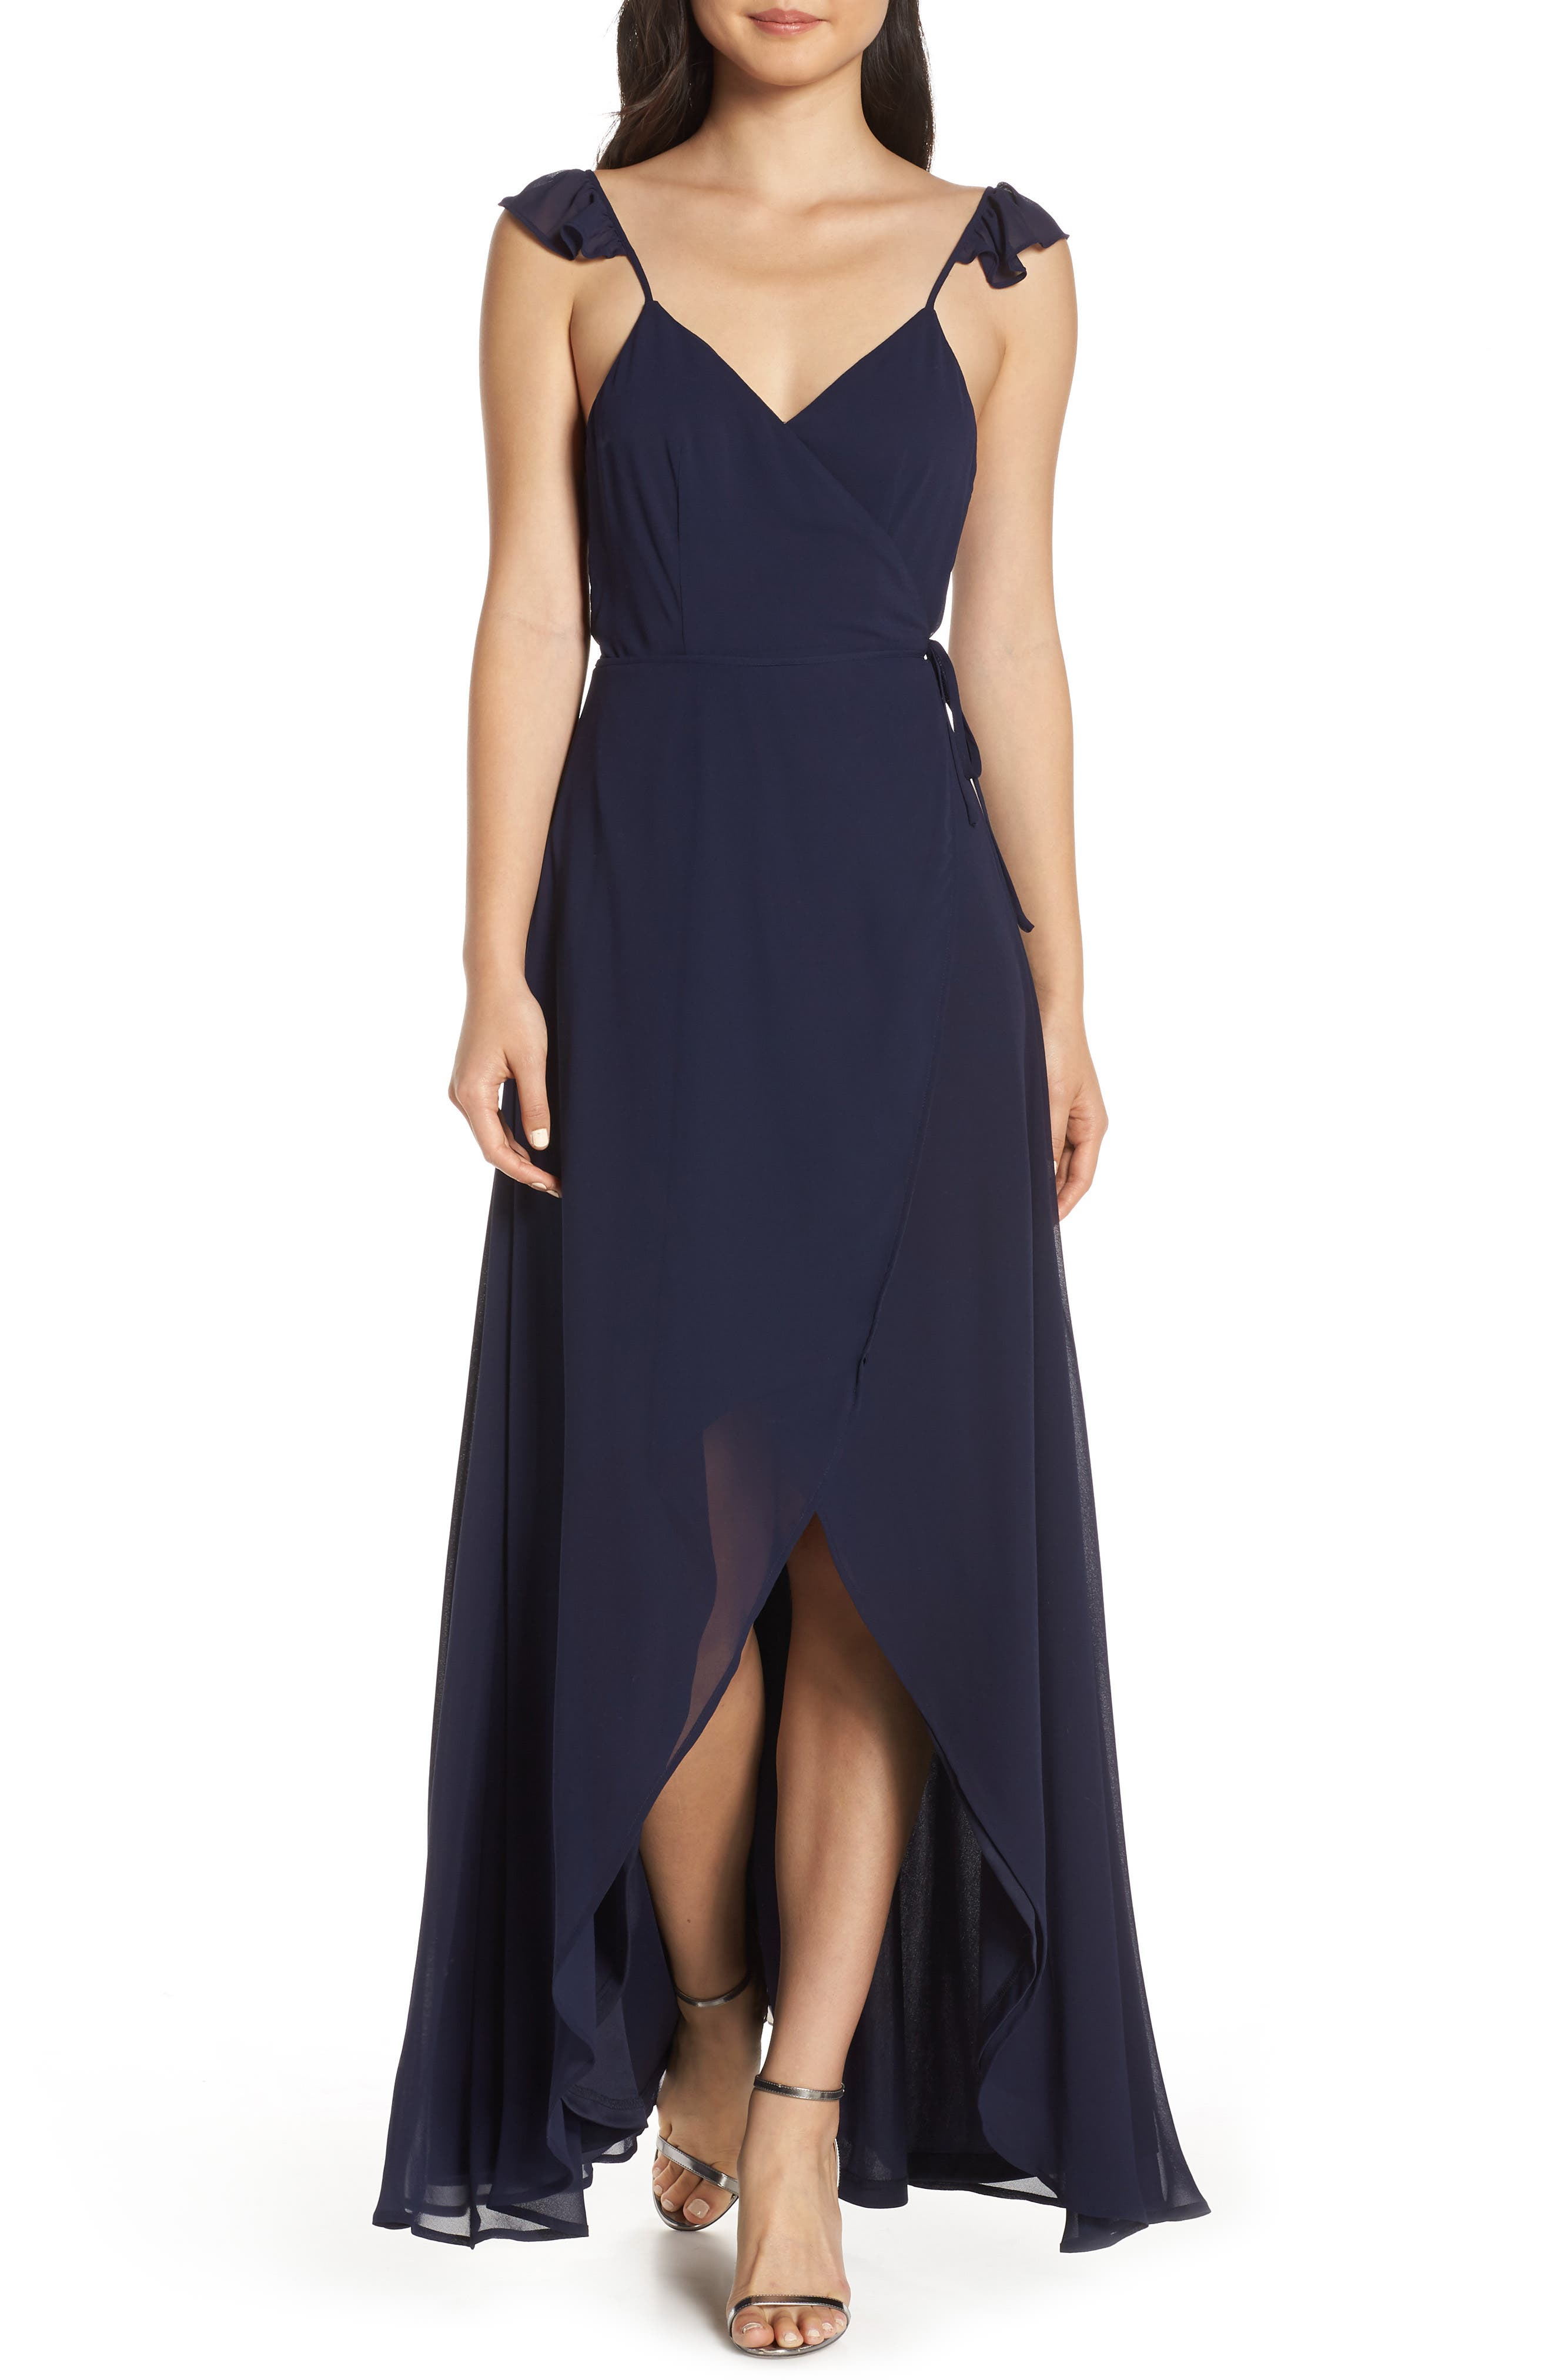 LULUS,                             Here's to Us High/Low Wrap Evening Dress,                             Main thumbnail 1, color,                             NAVY